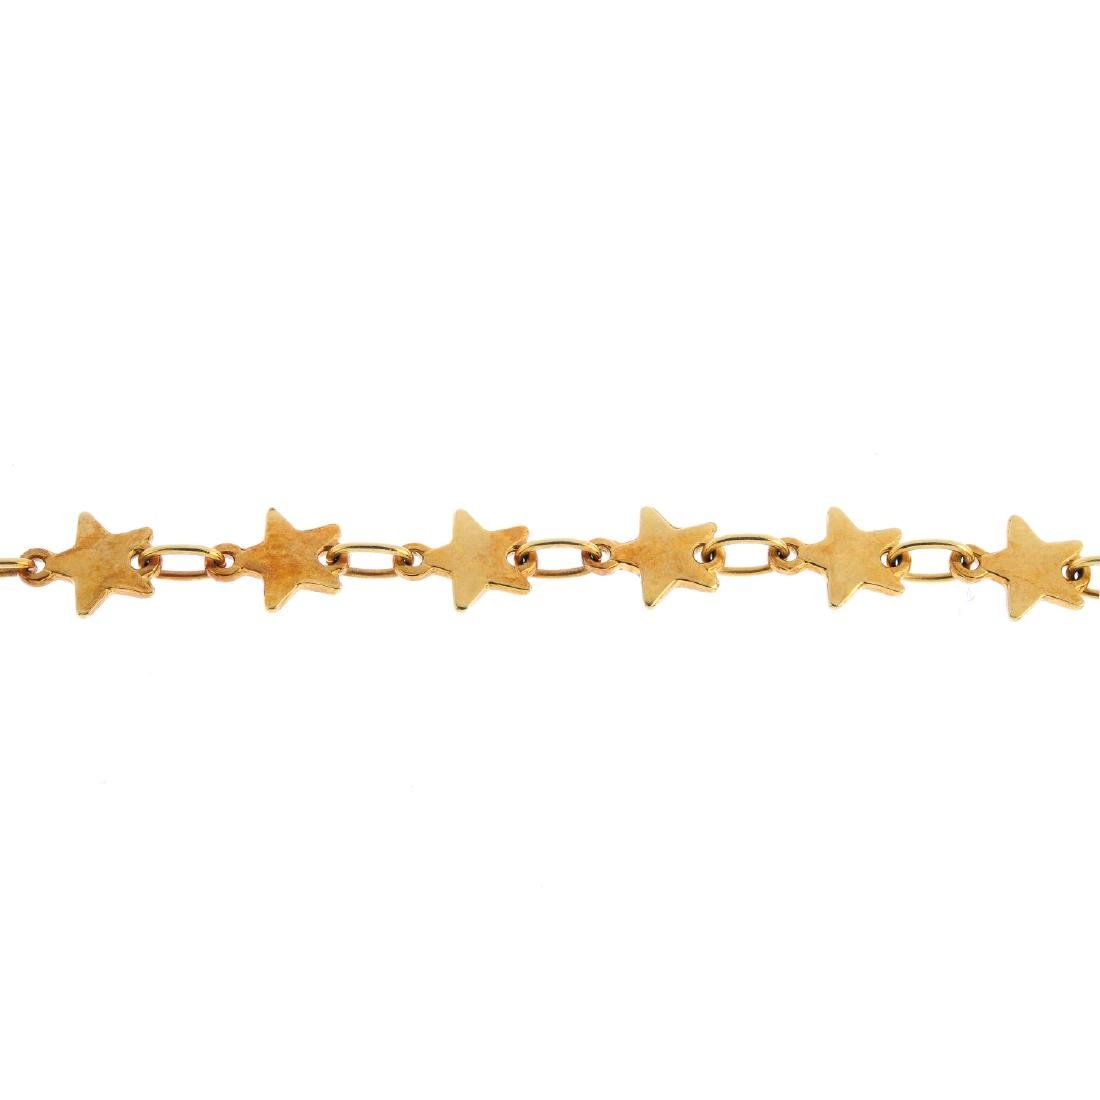 A bracelet. Comprising a series of stars, with